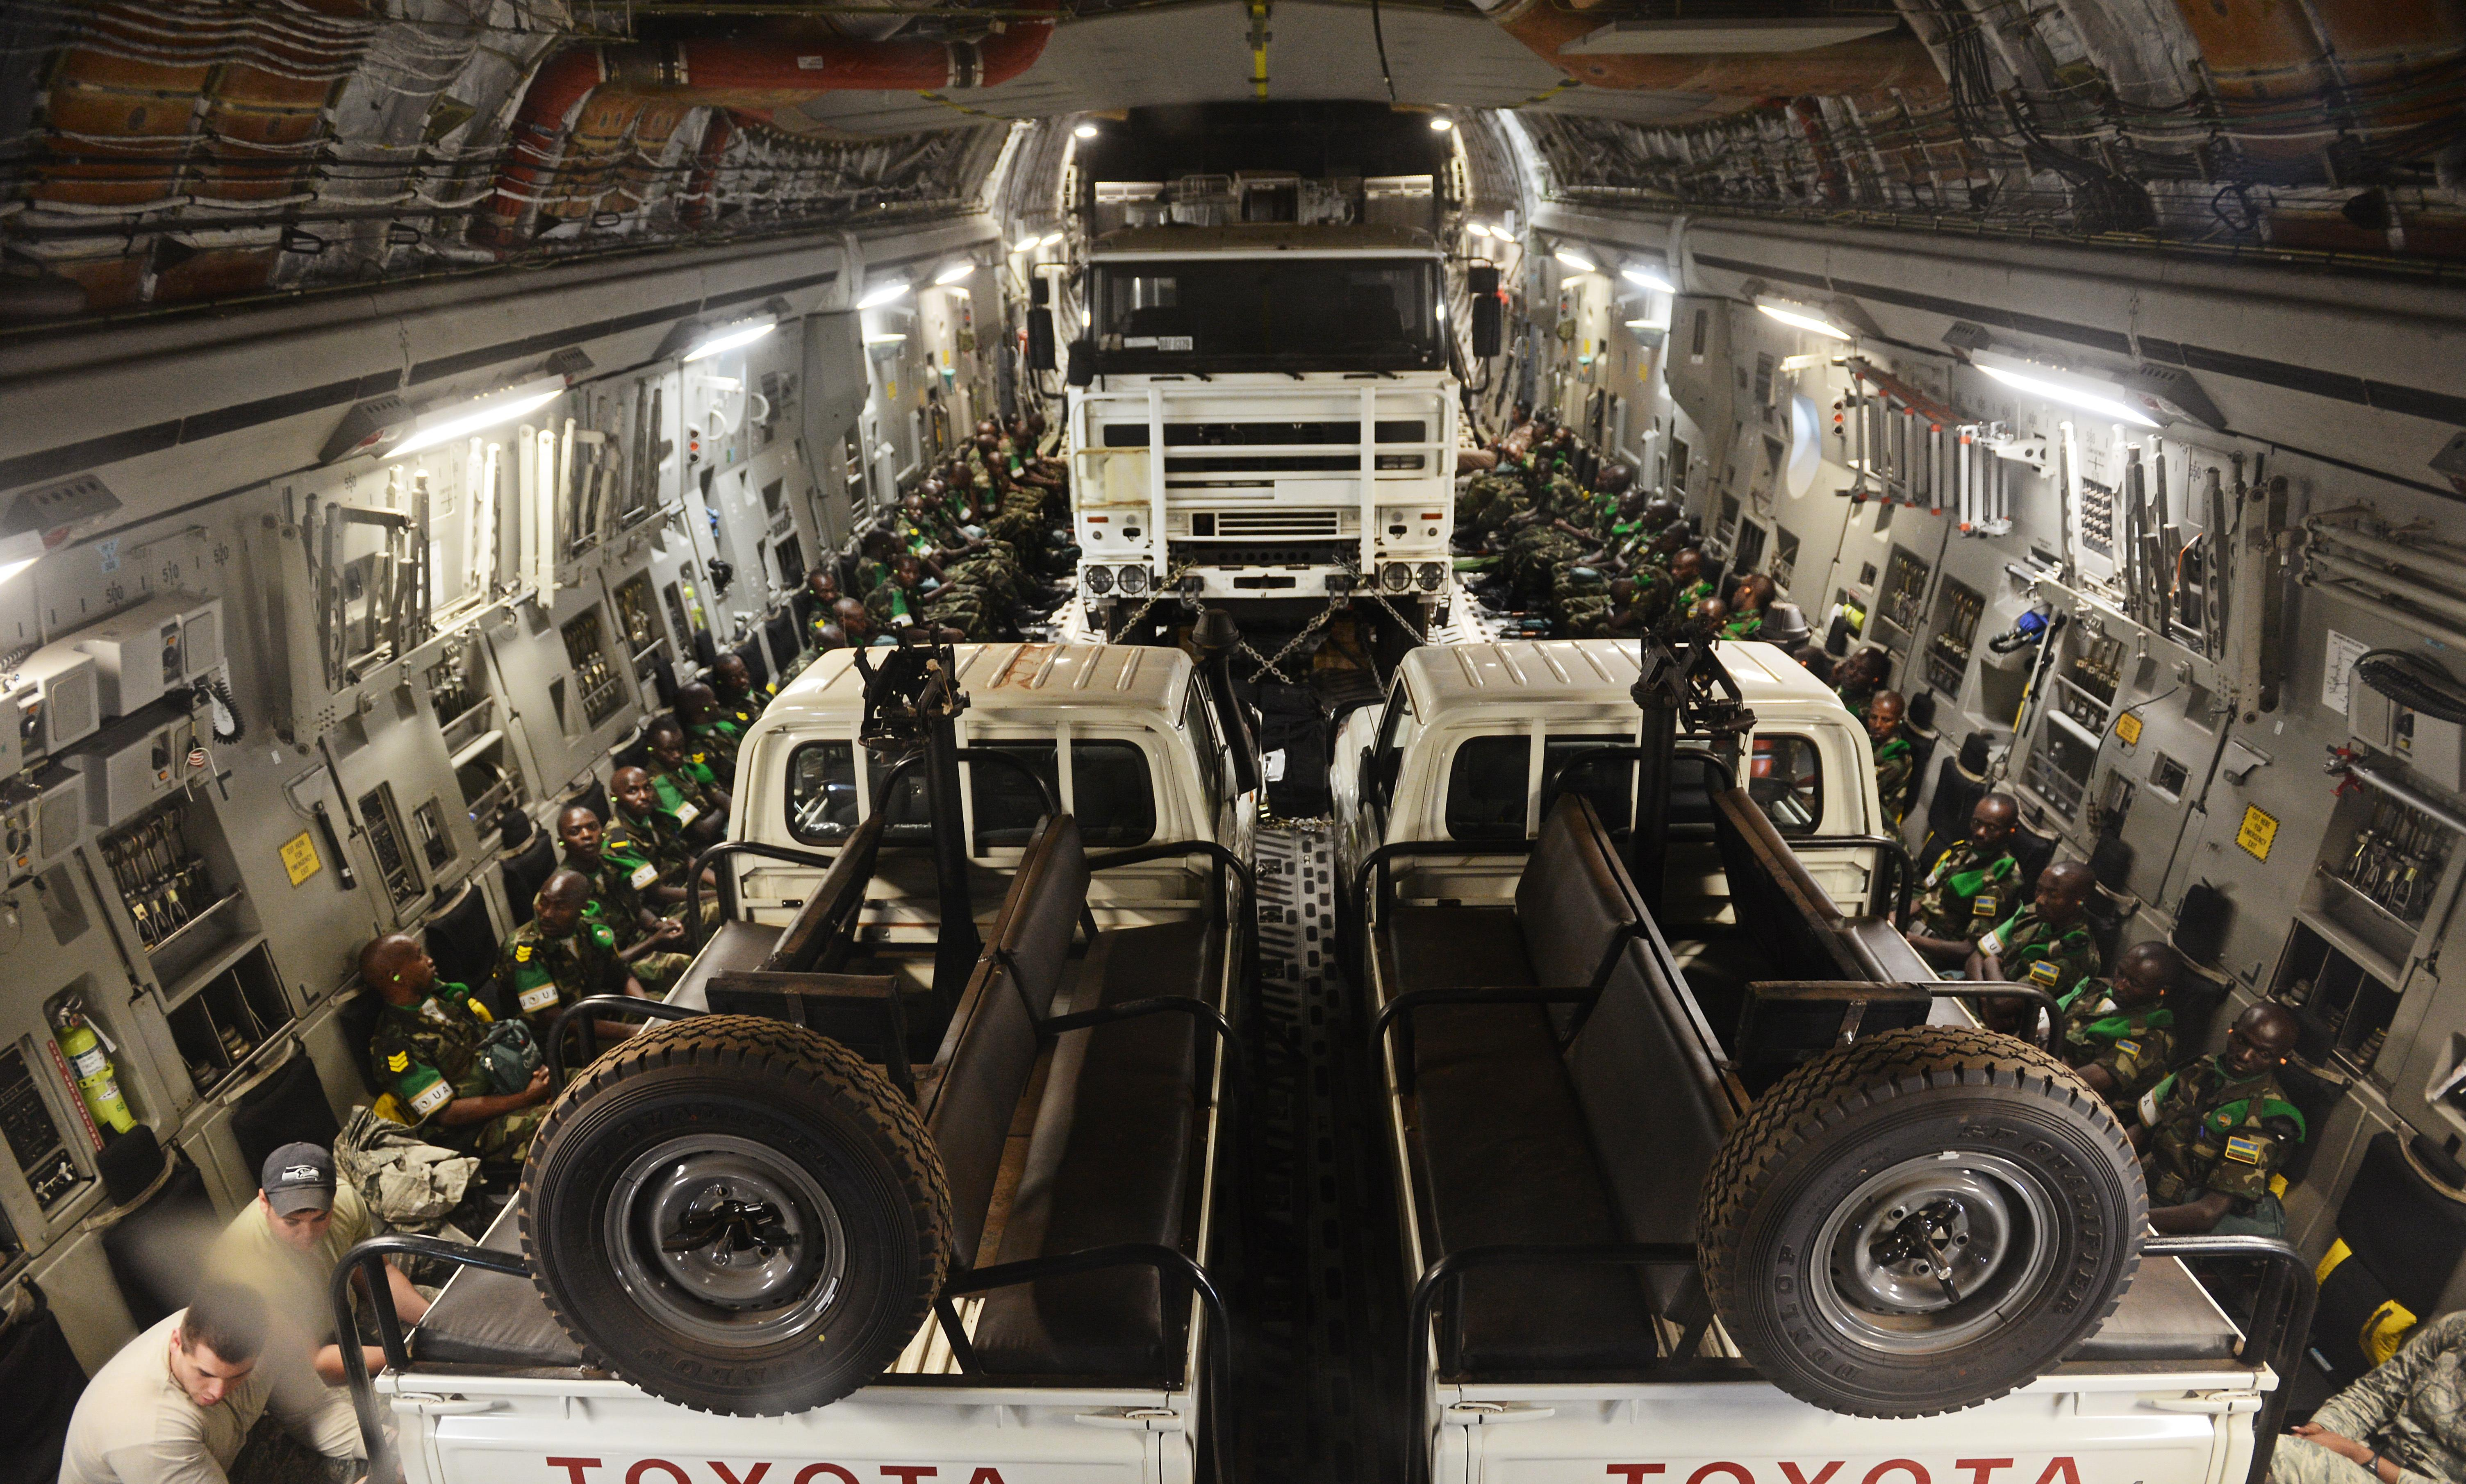 AF continues to airlift Rwandan units to Central African Republic